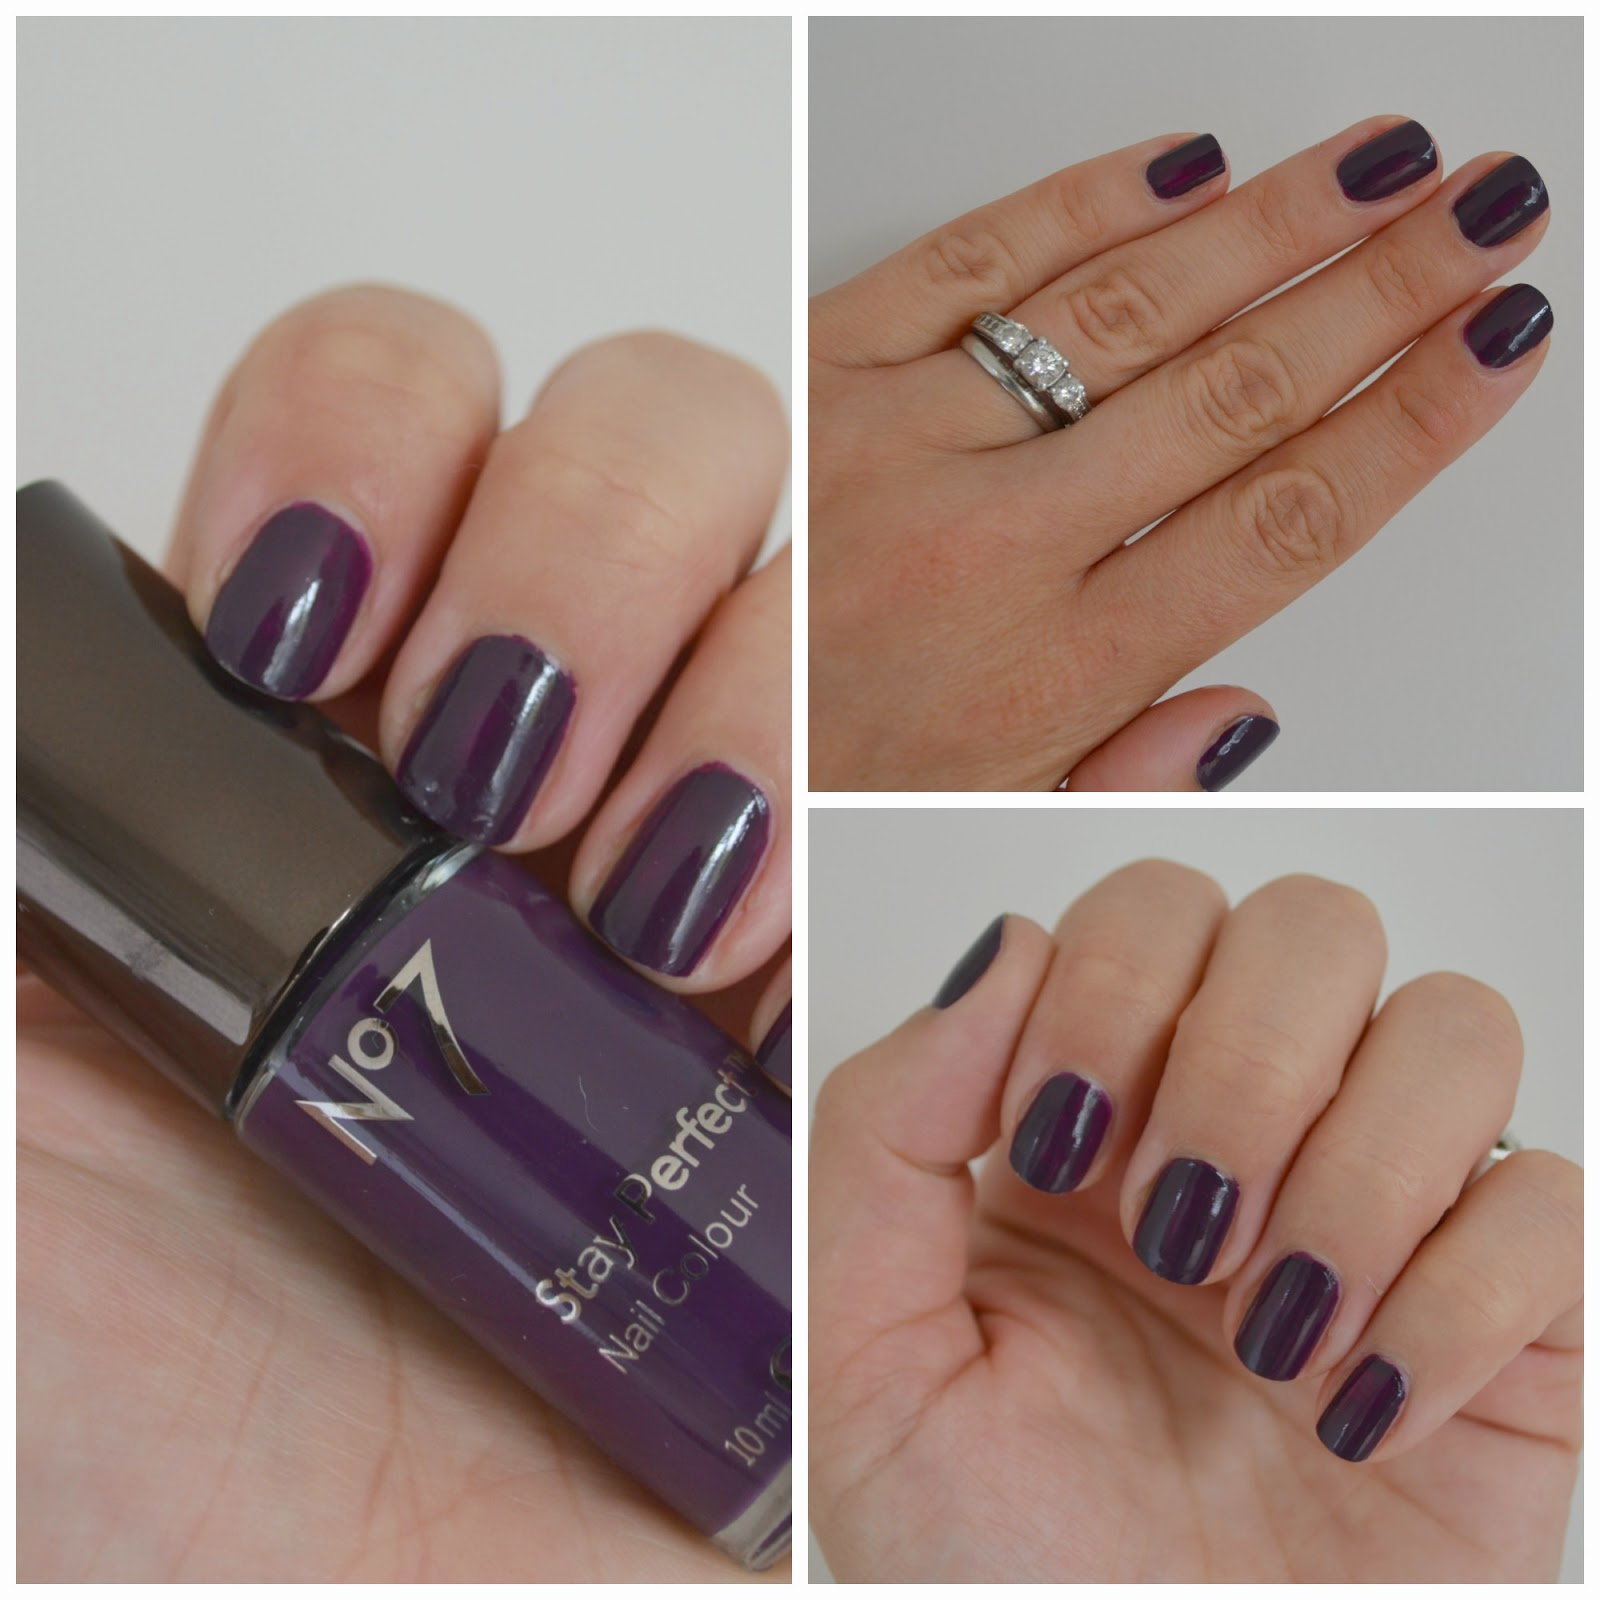 No7 Stay Perfect Nail Colour in Blackcurrant